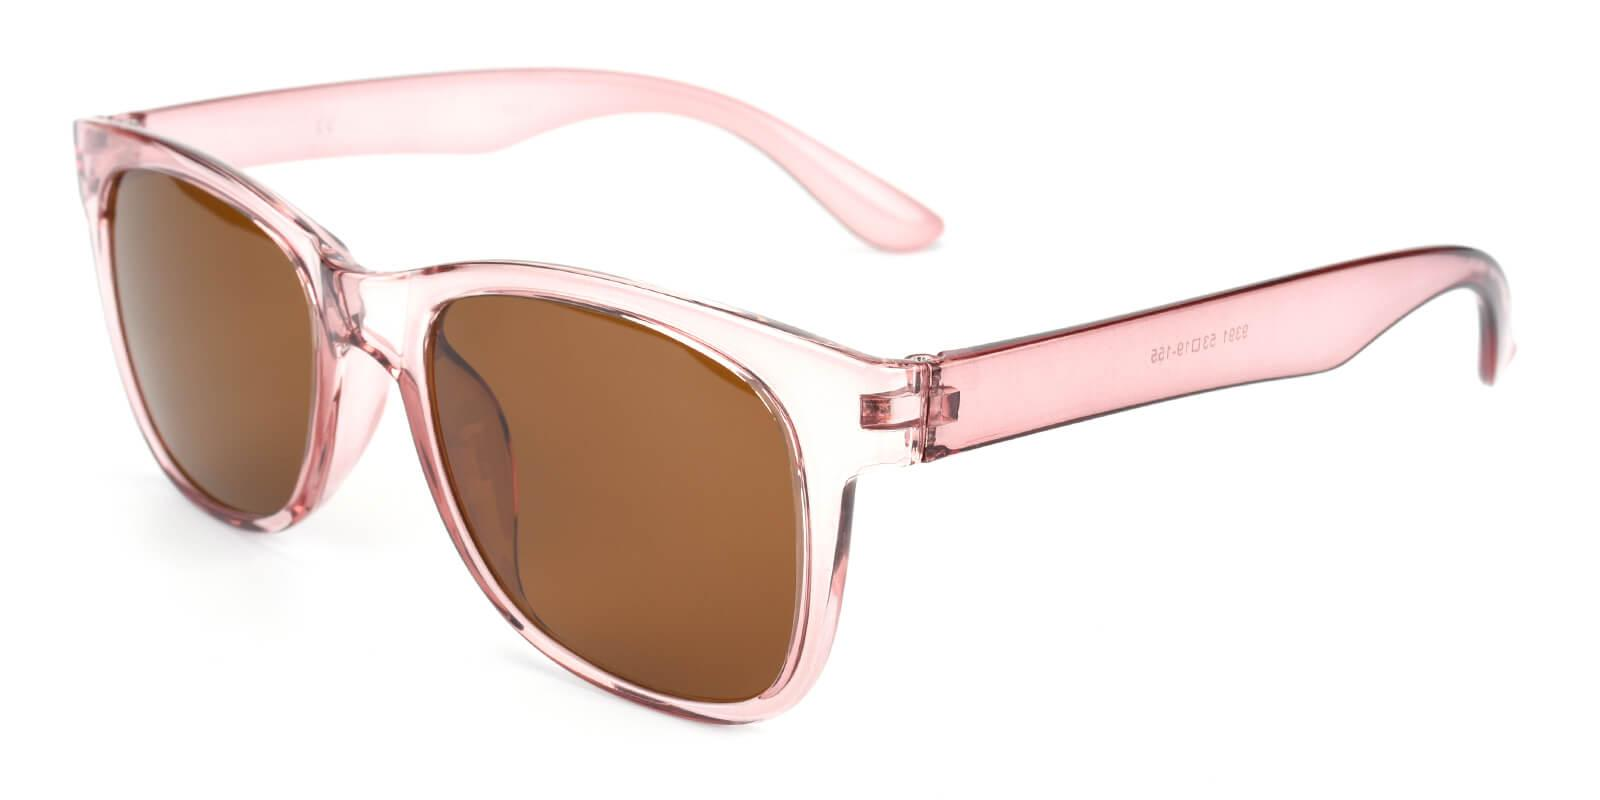 Tracly-Pink-Square / Cat-TR-Sunglasses-additional1